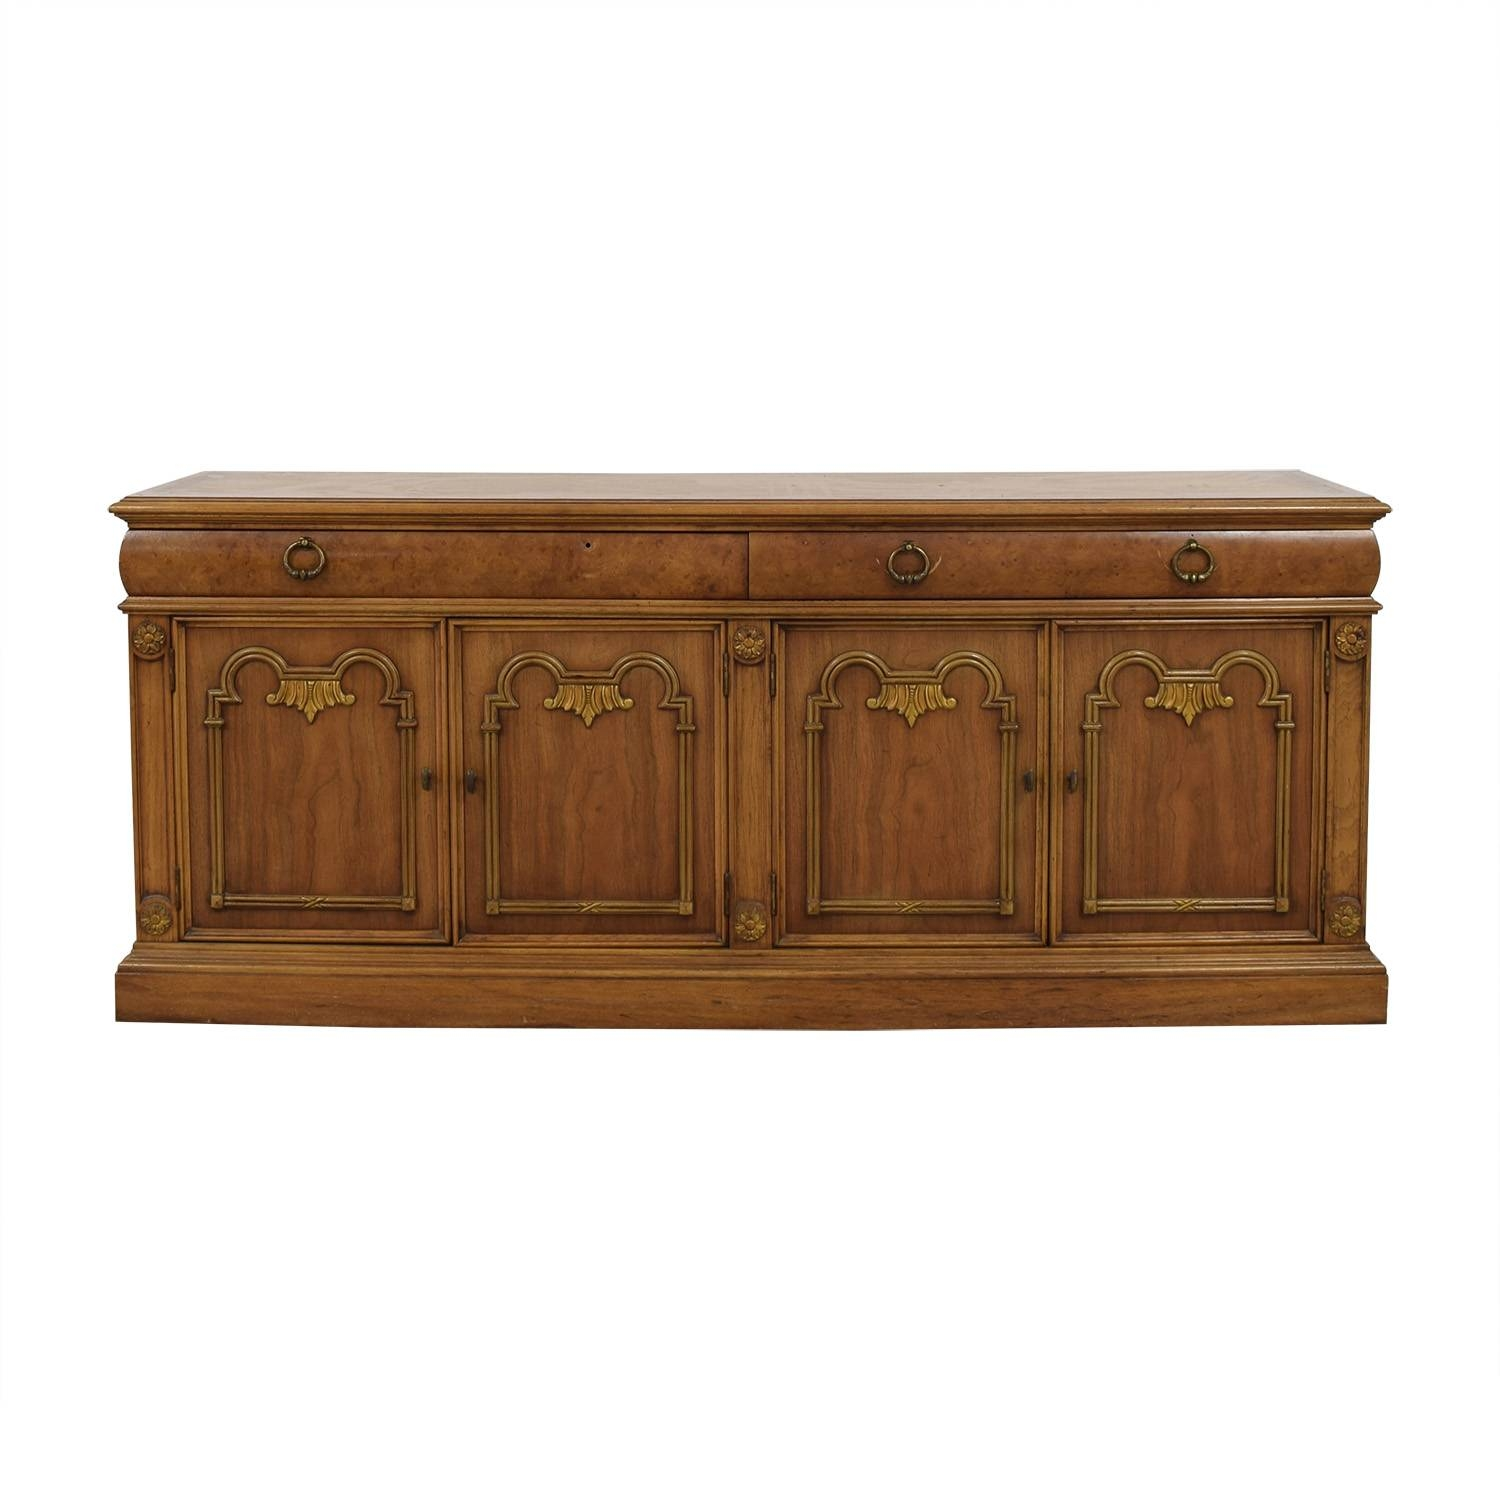 79% Off   Thomasville Thomasville Buffet Storage Cabinet / Storage Intended For Thomasville Sideboards (Photo 5 of 15)